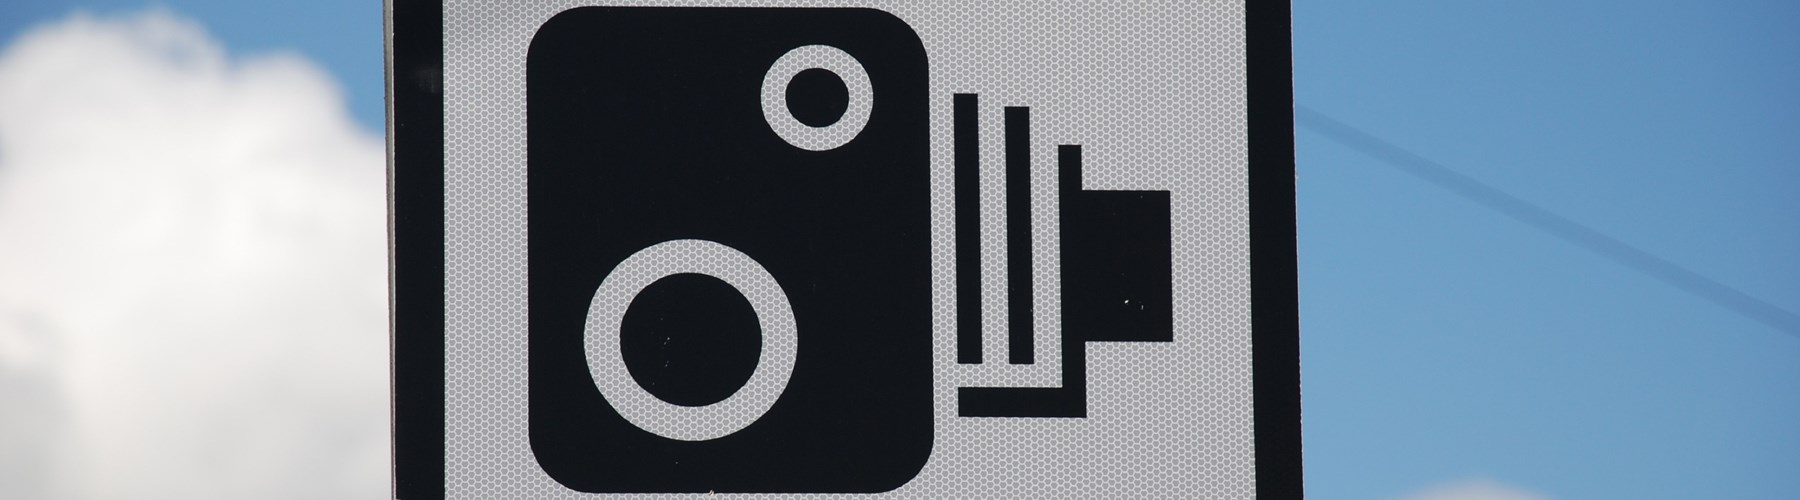 Speed camera traffic sign